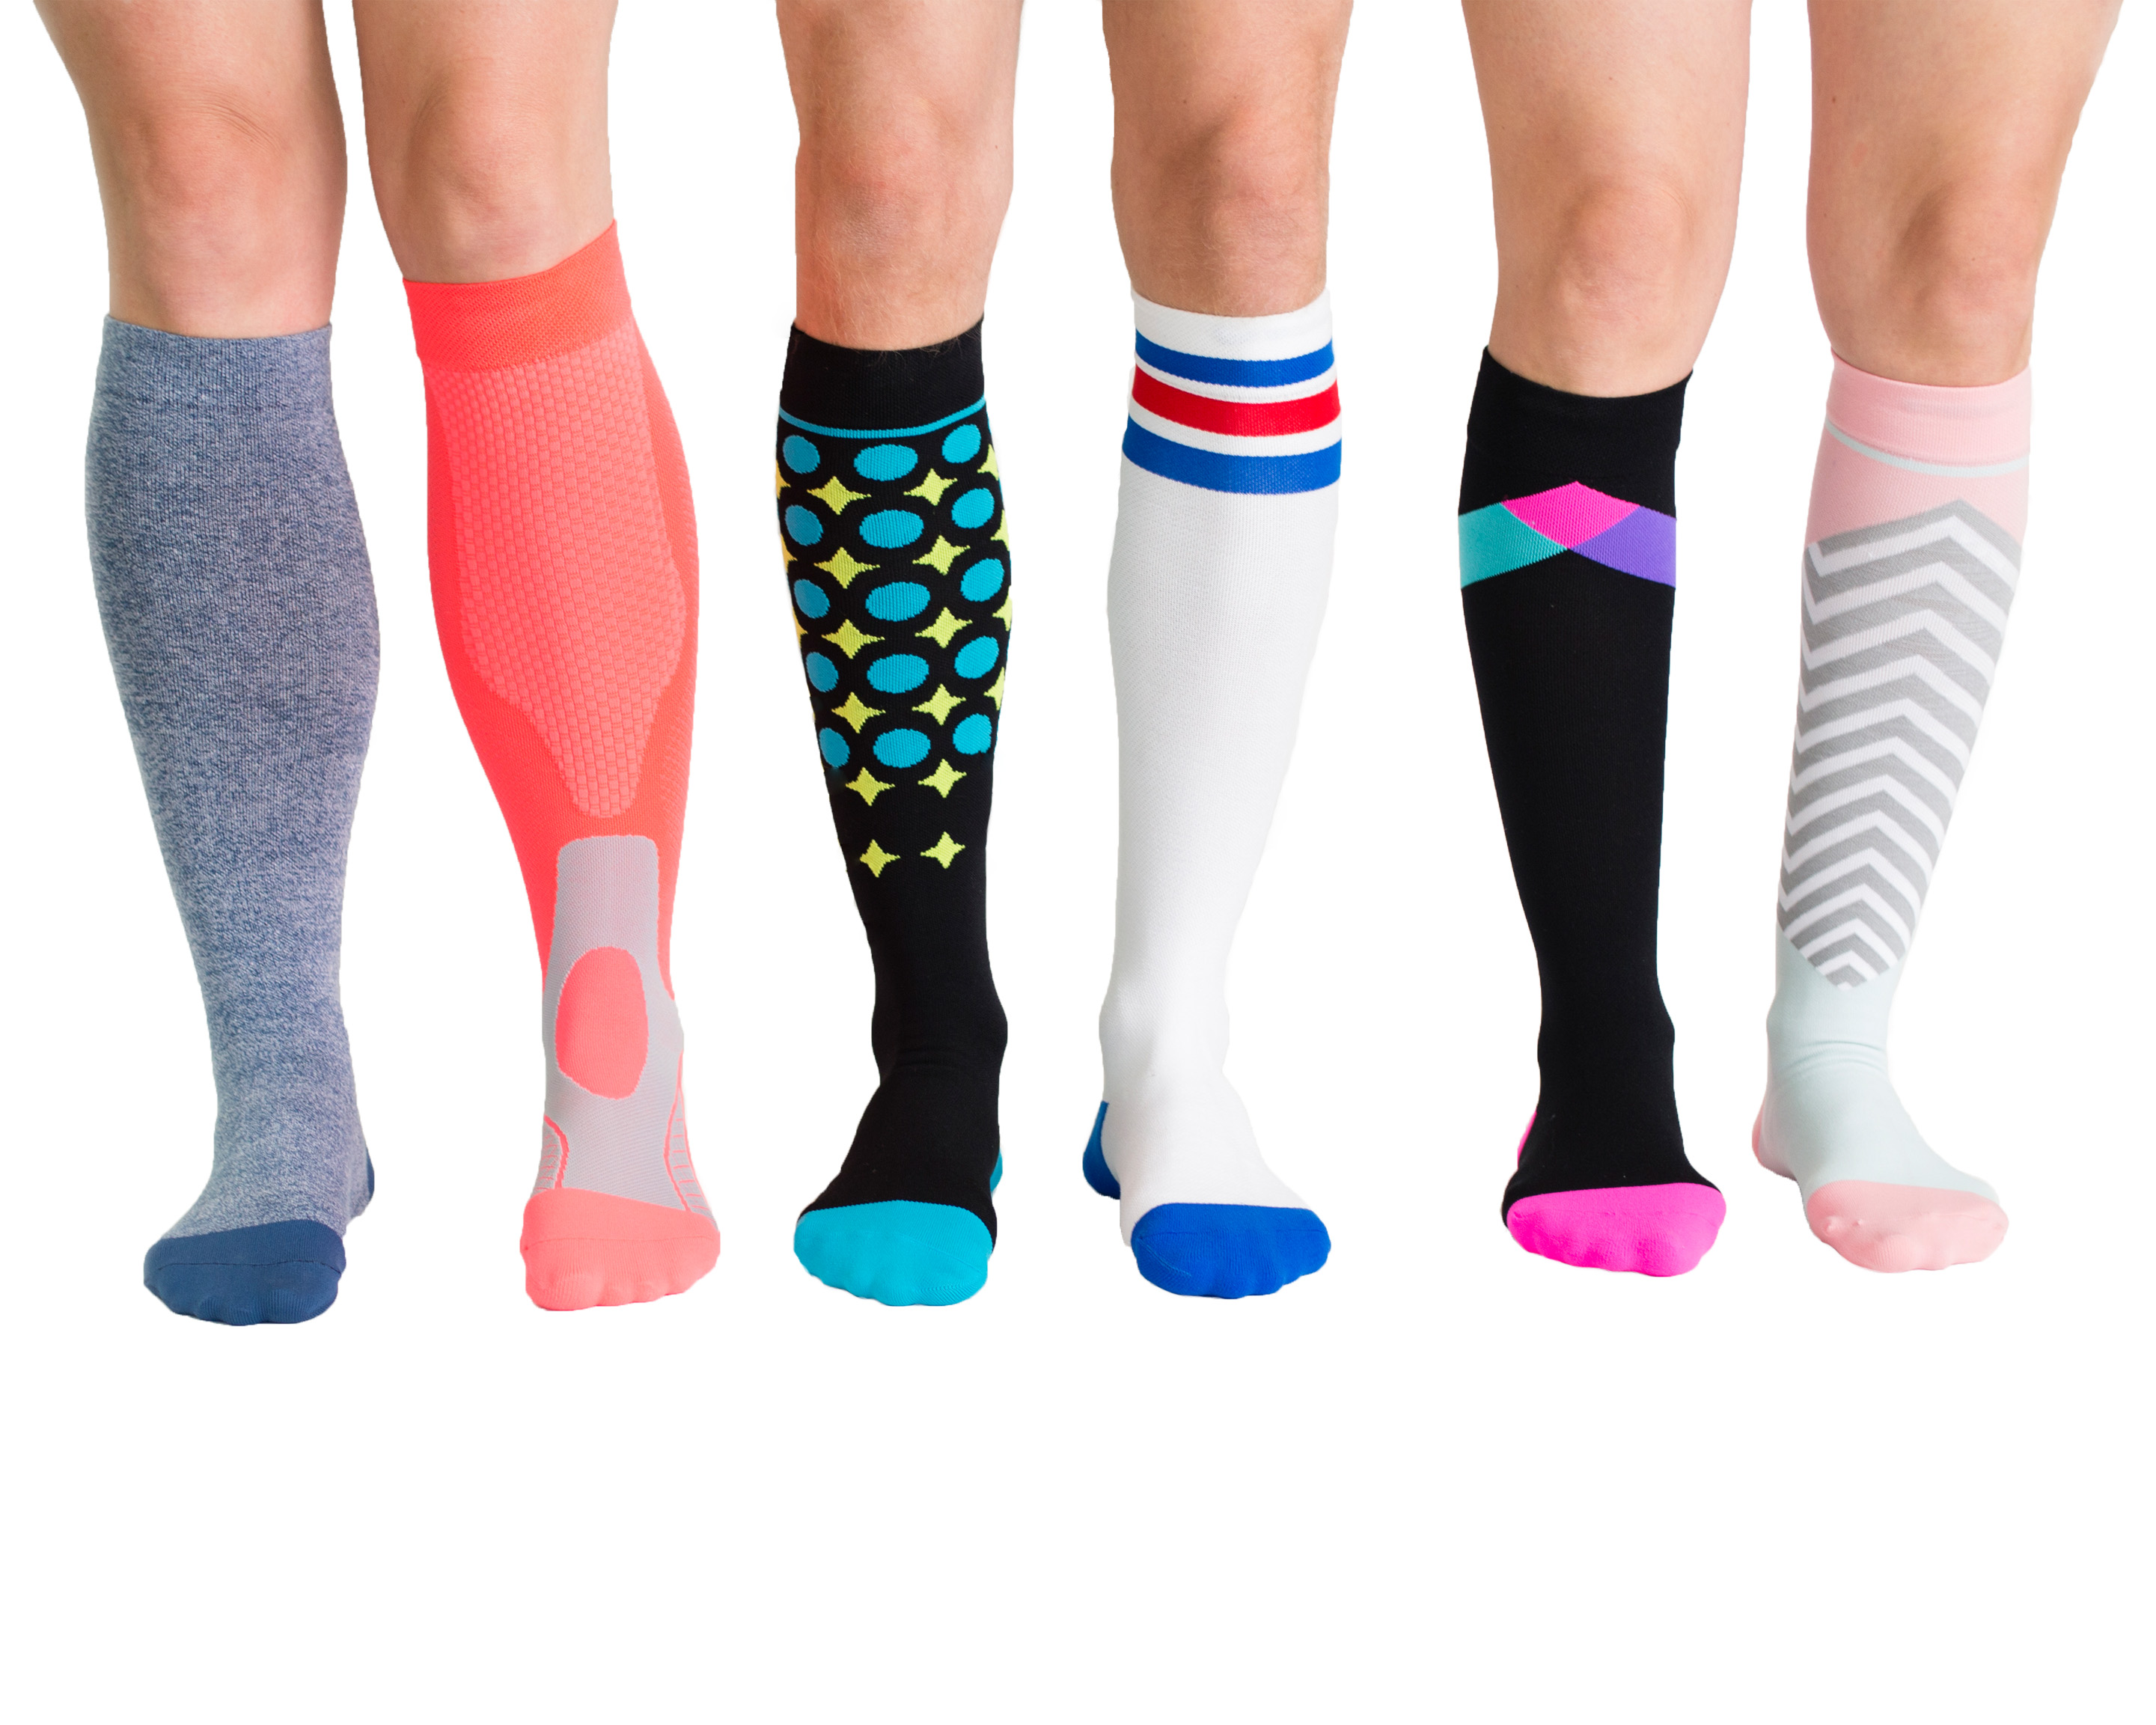 Calf Compression Sleeves for Running